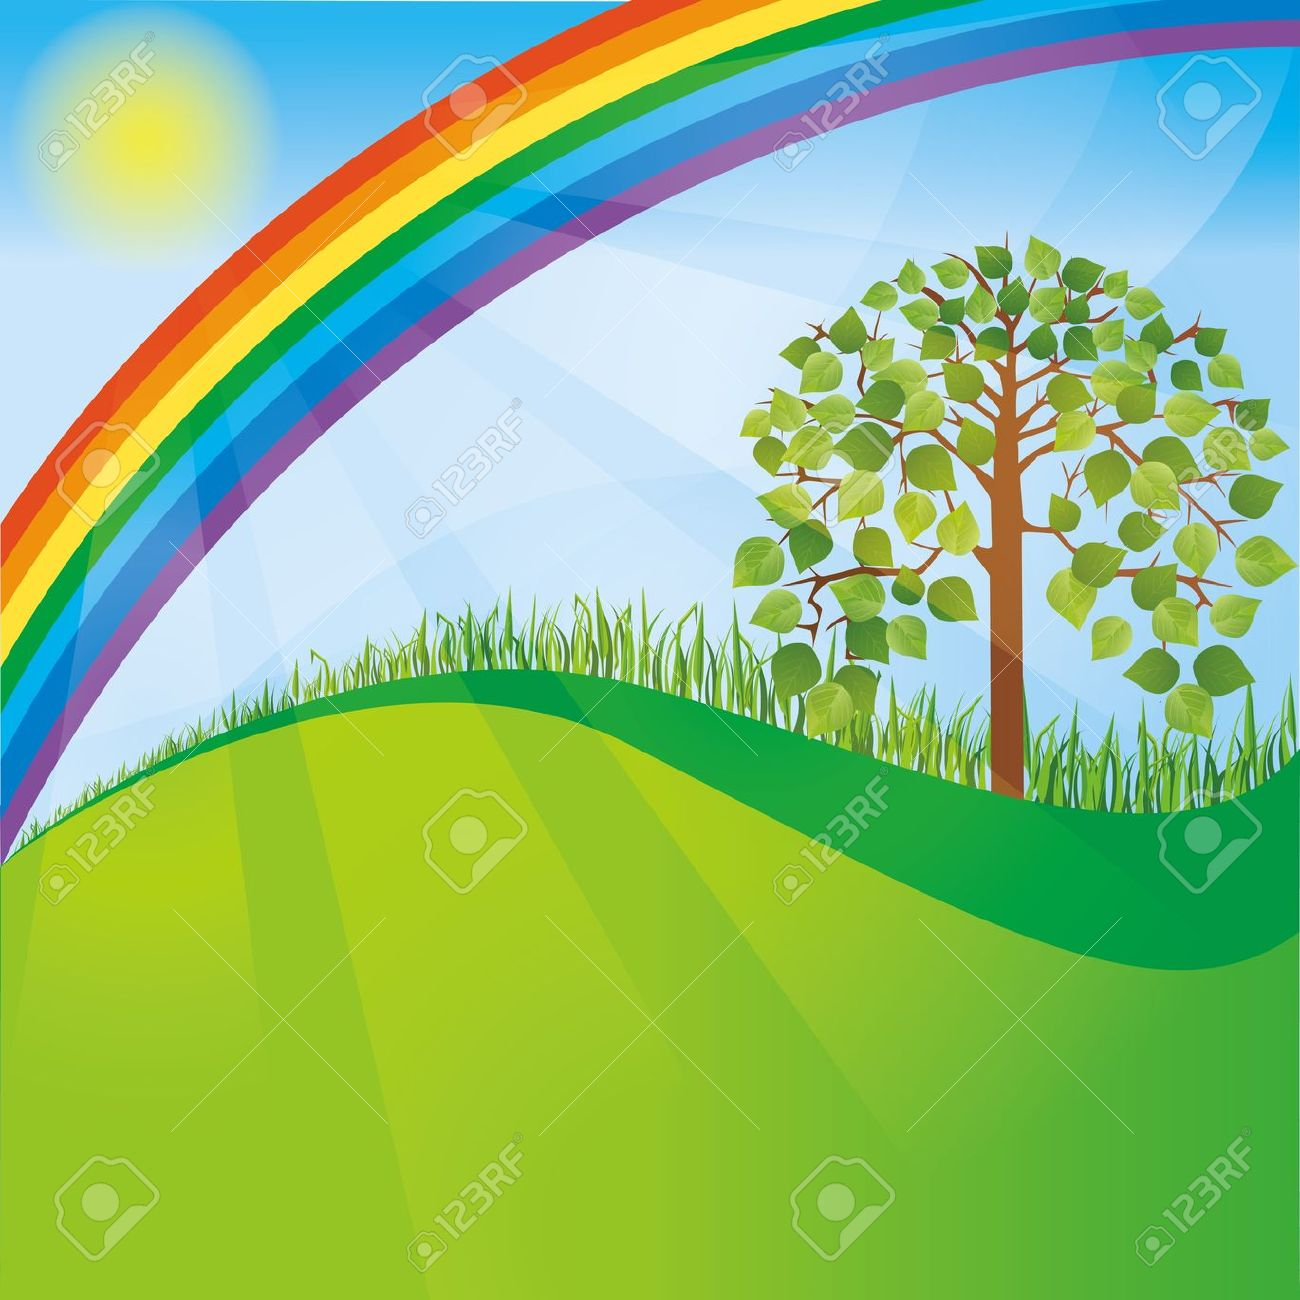 Nature clipart background.